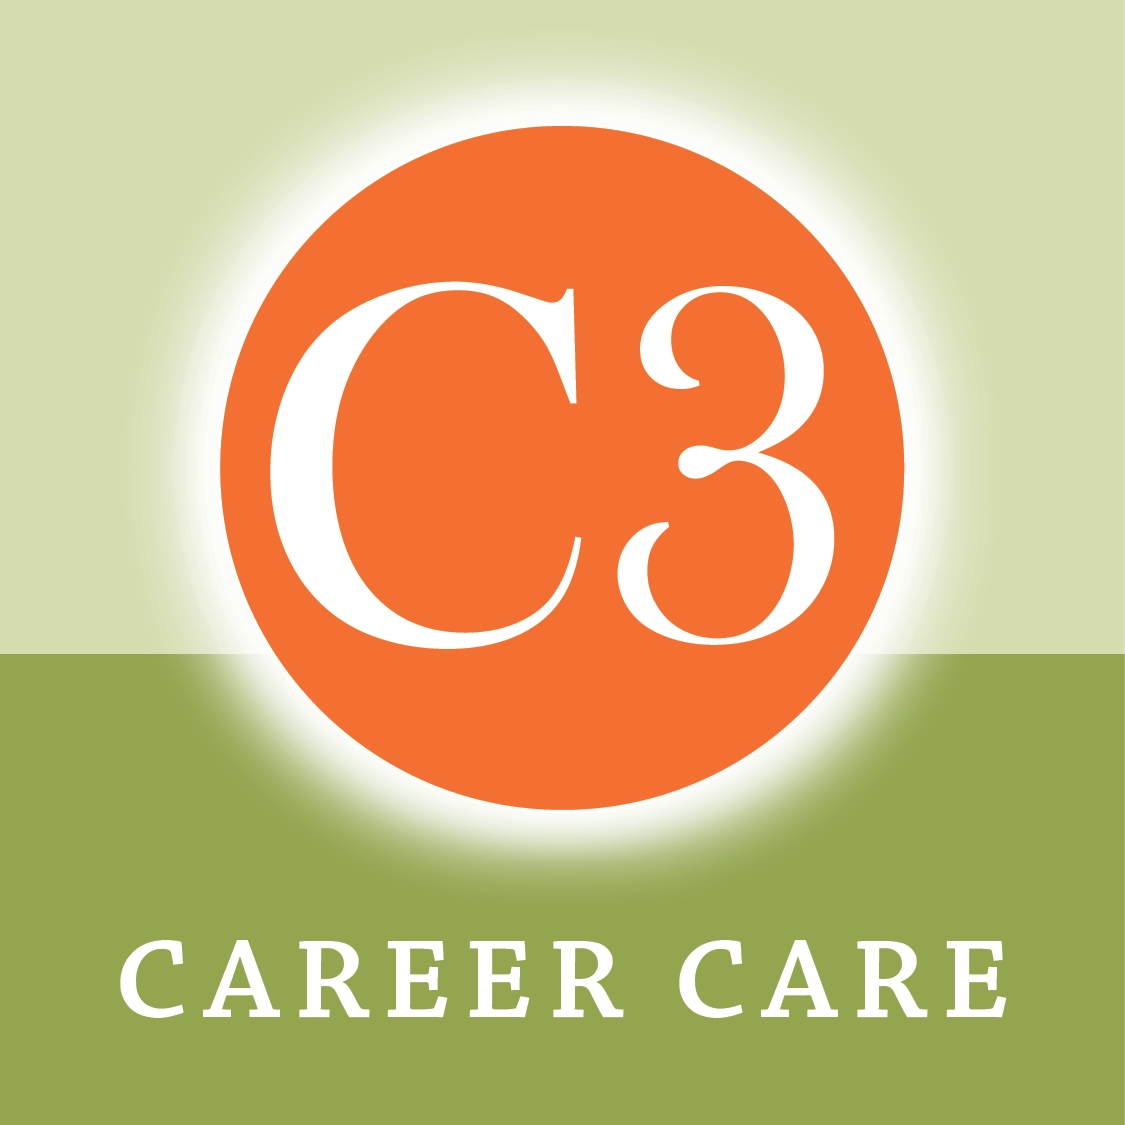 C3 Career Care